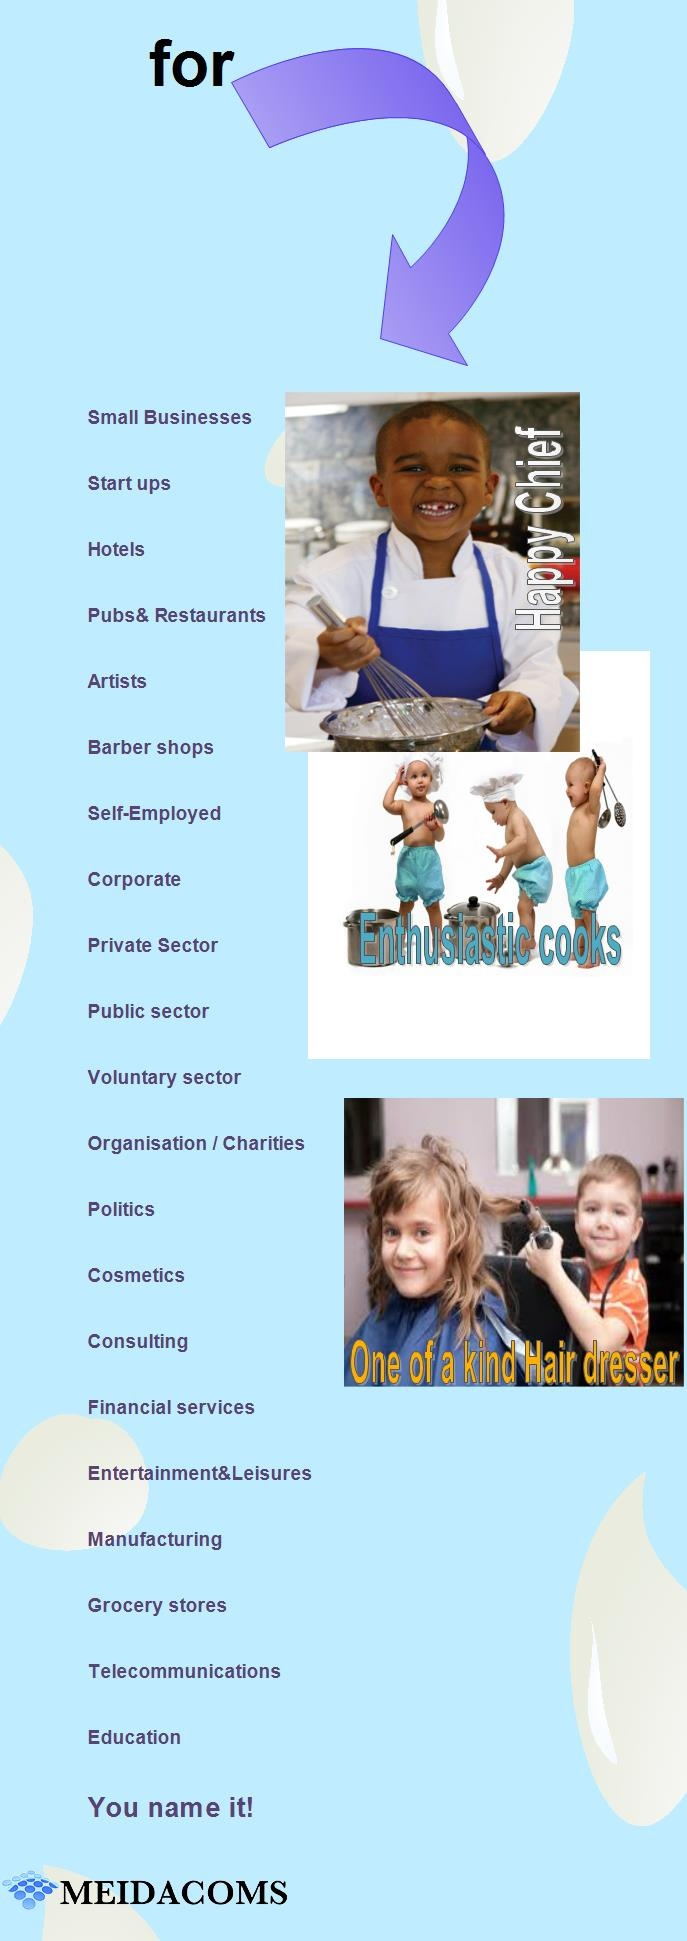 #SmallBusinesses/ #Self-Employed/ #Pubs-#Restaurants/ #Politics/ #Financial services/ #Charities/ Artists / #Education-sector #Entertainment/ #Public sector/ #Private Businesses